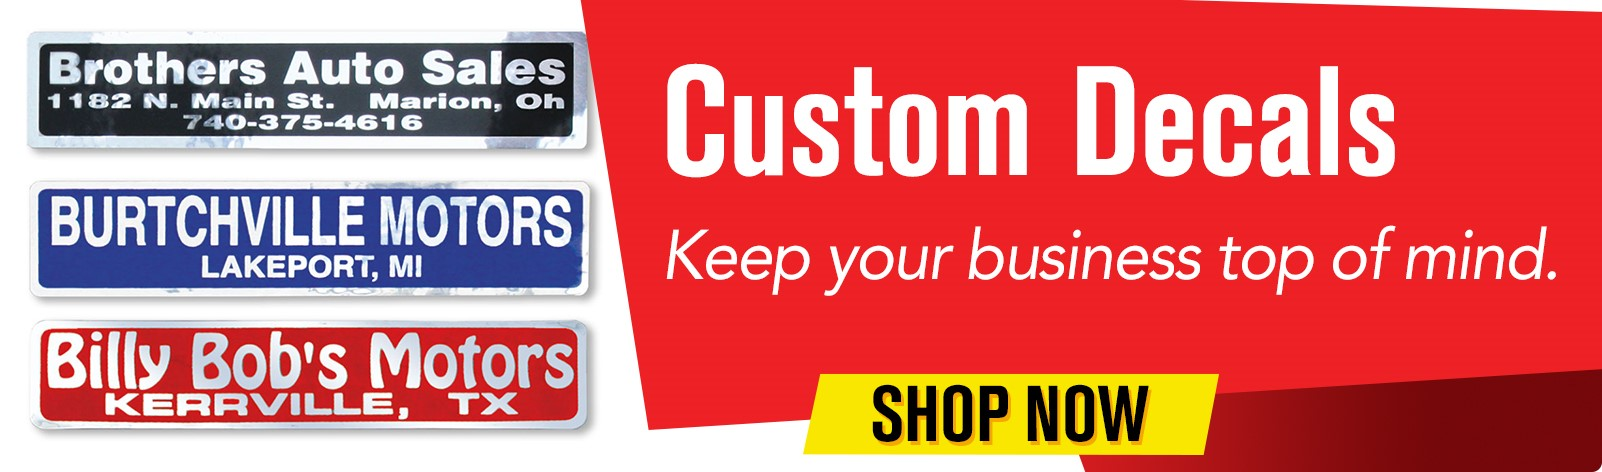 Custom Decals - Keep your business top of mind.